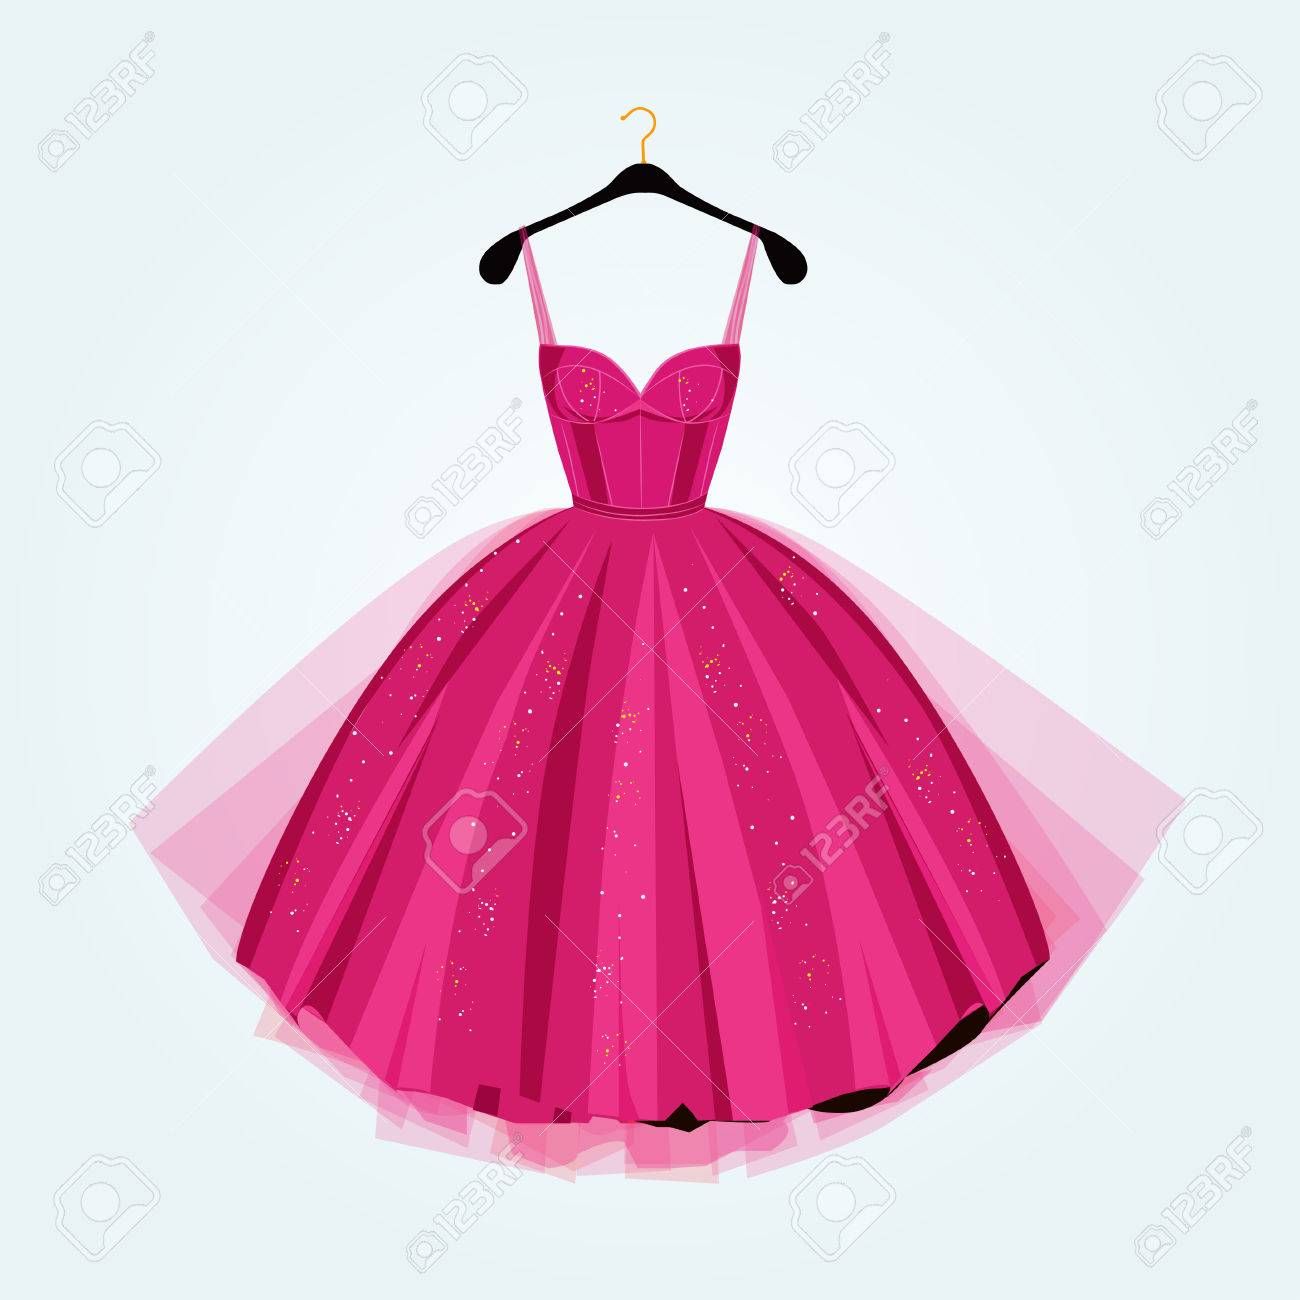 Pink party dress.Prom dress.Vector illustration.